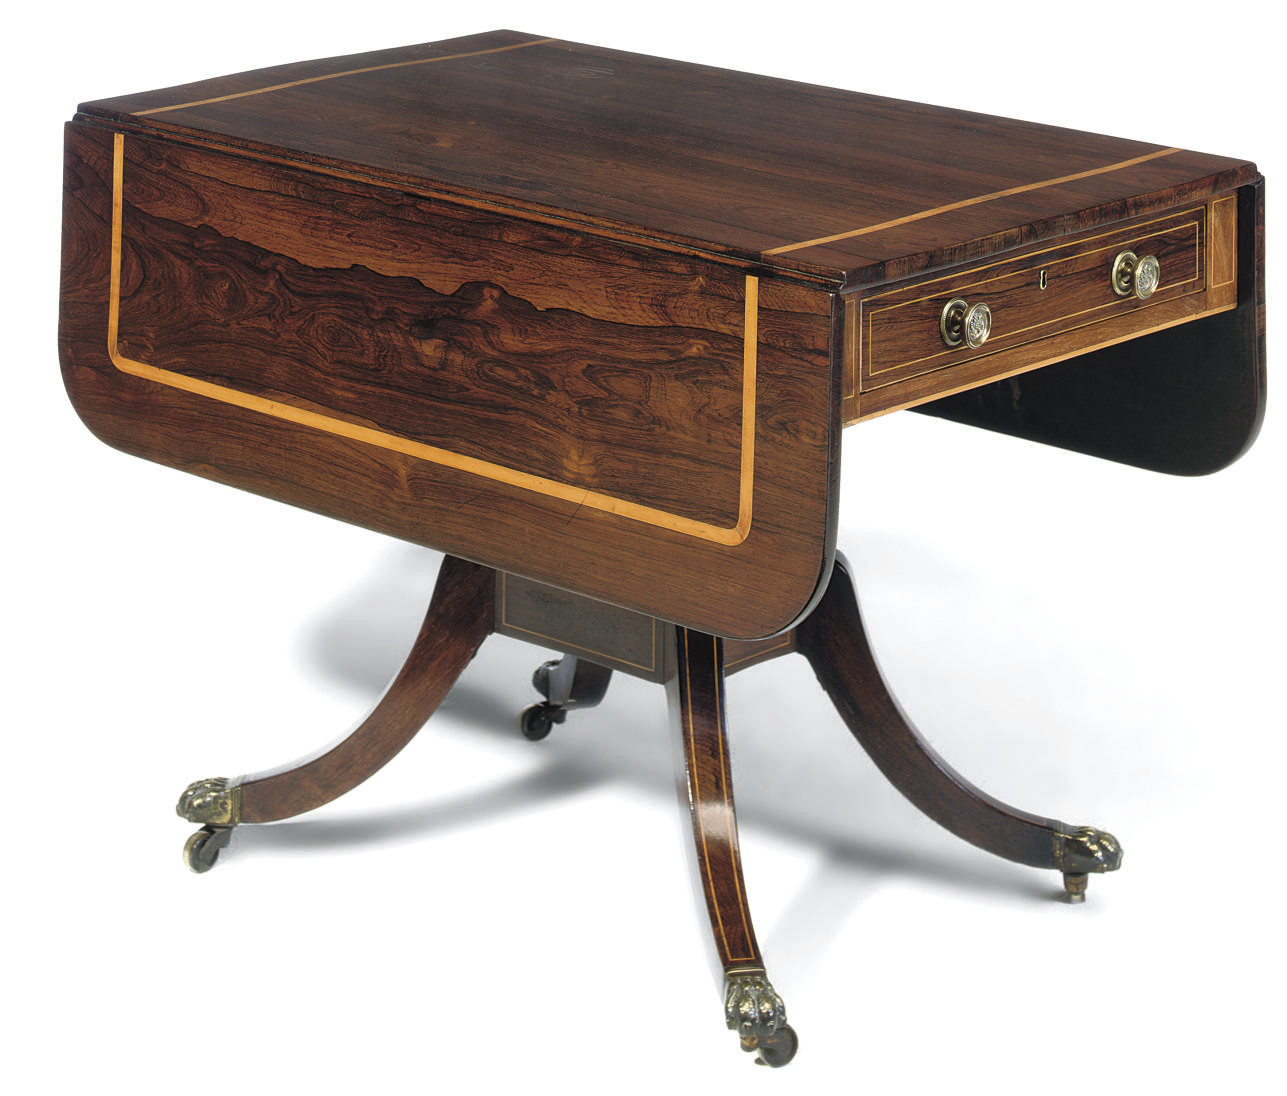 A REGENCY ROSEWOOD AND SYCAMOR